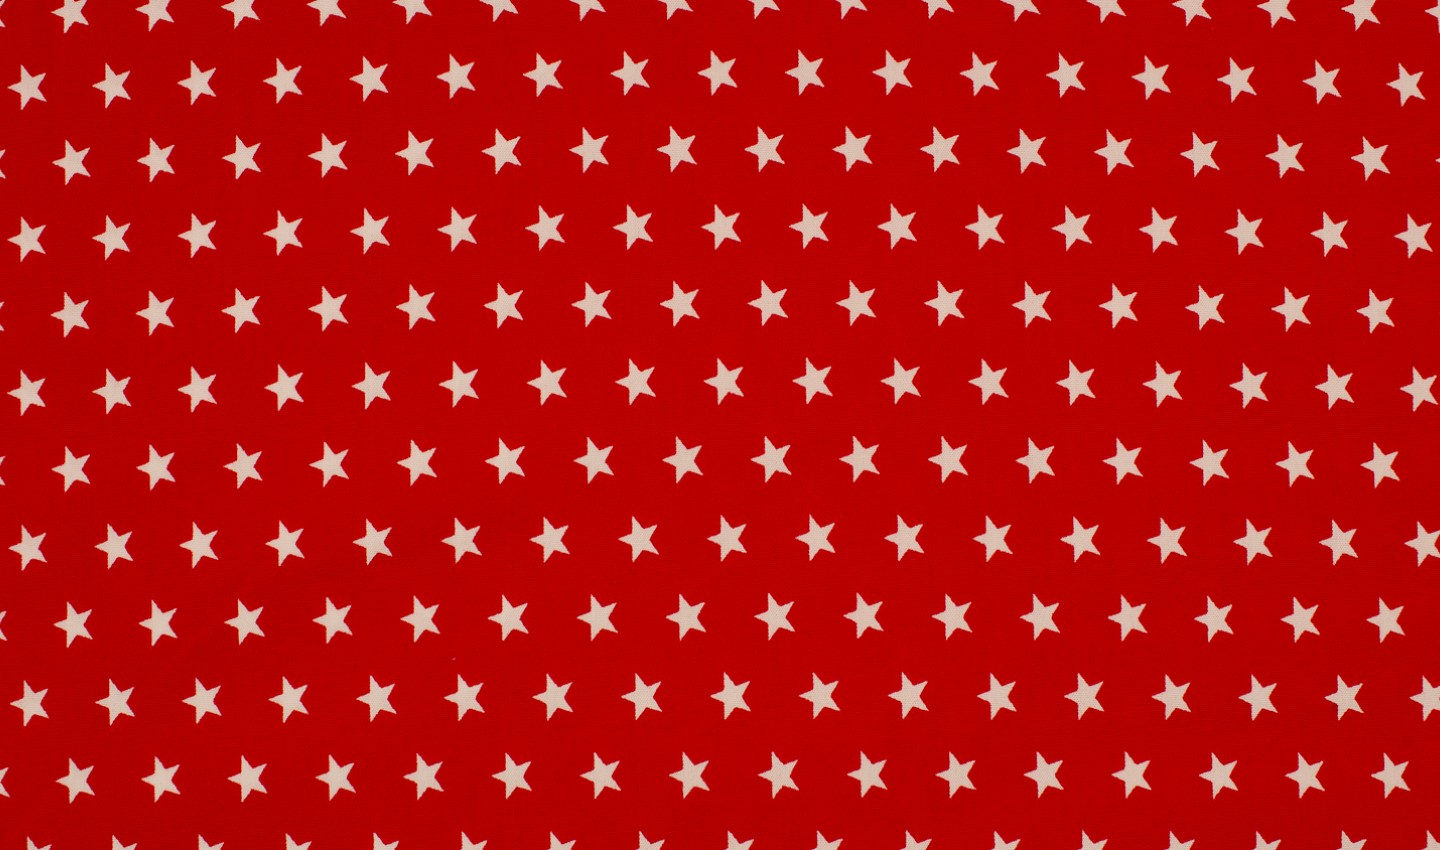 Daisy Stars - red-white